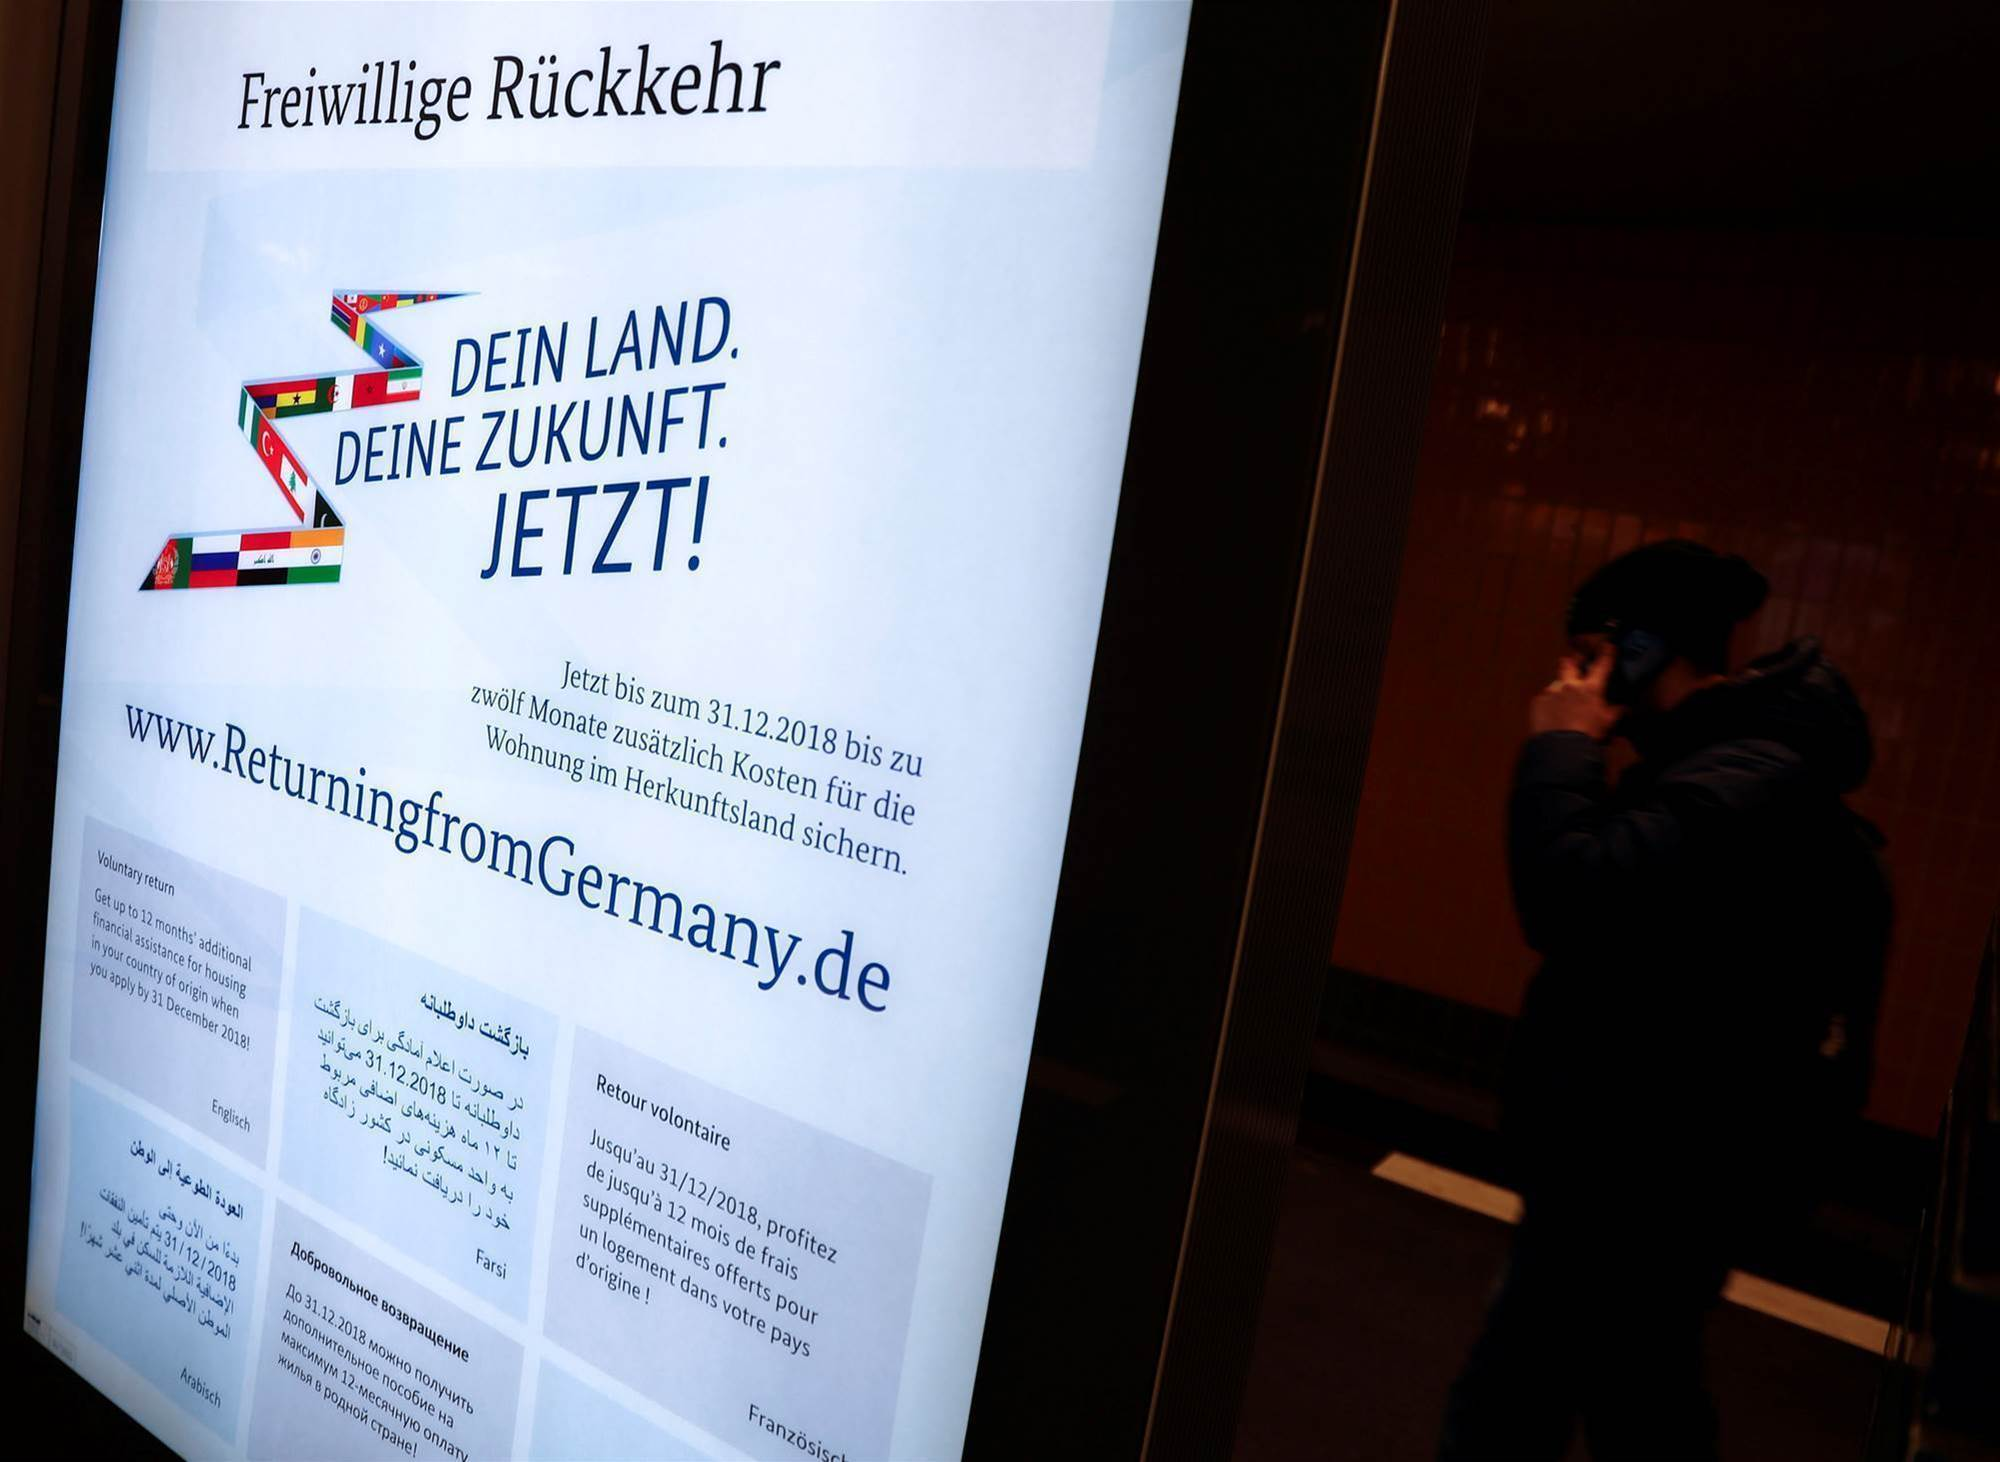 Tech executives tell Germany to scrap 'hate-filled' migrant campaign